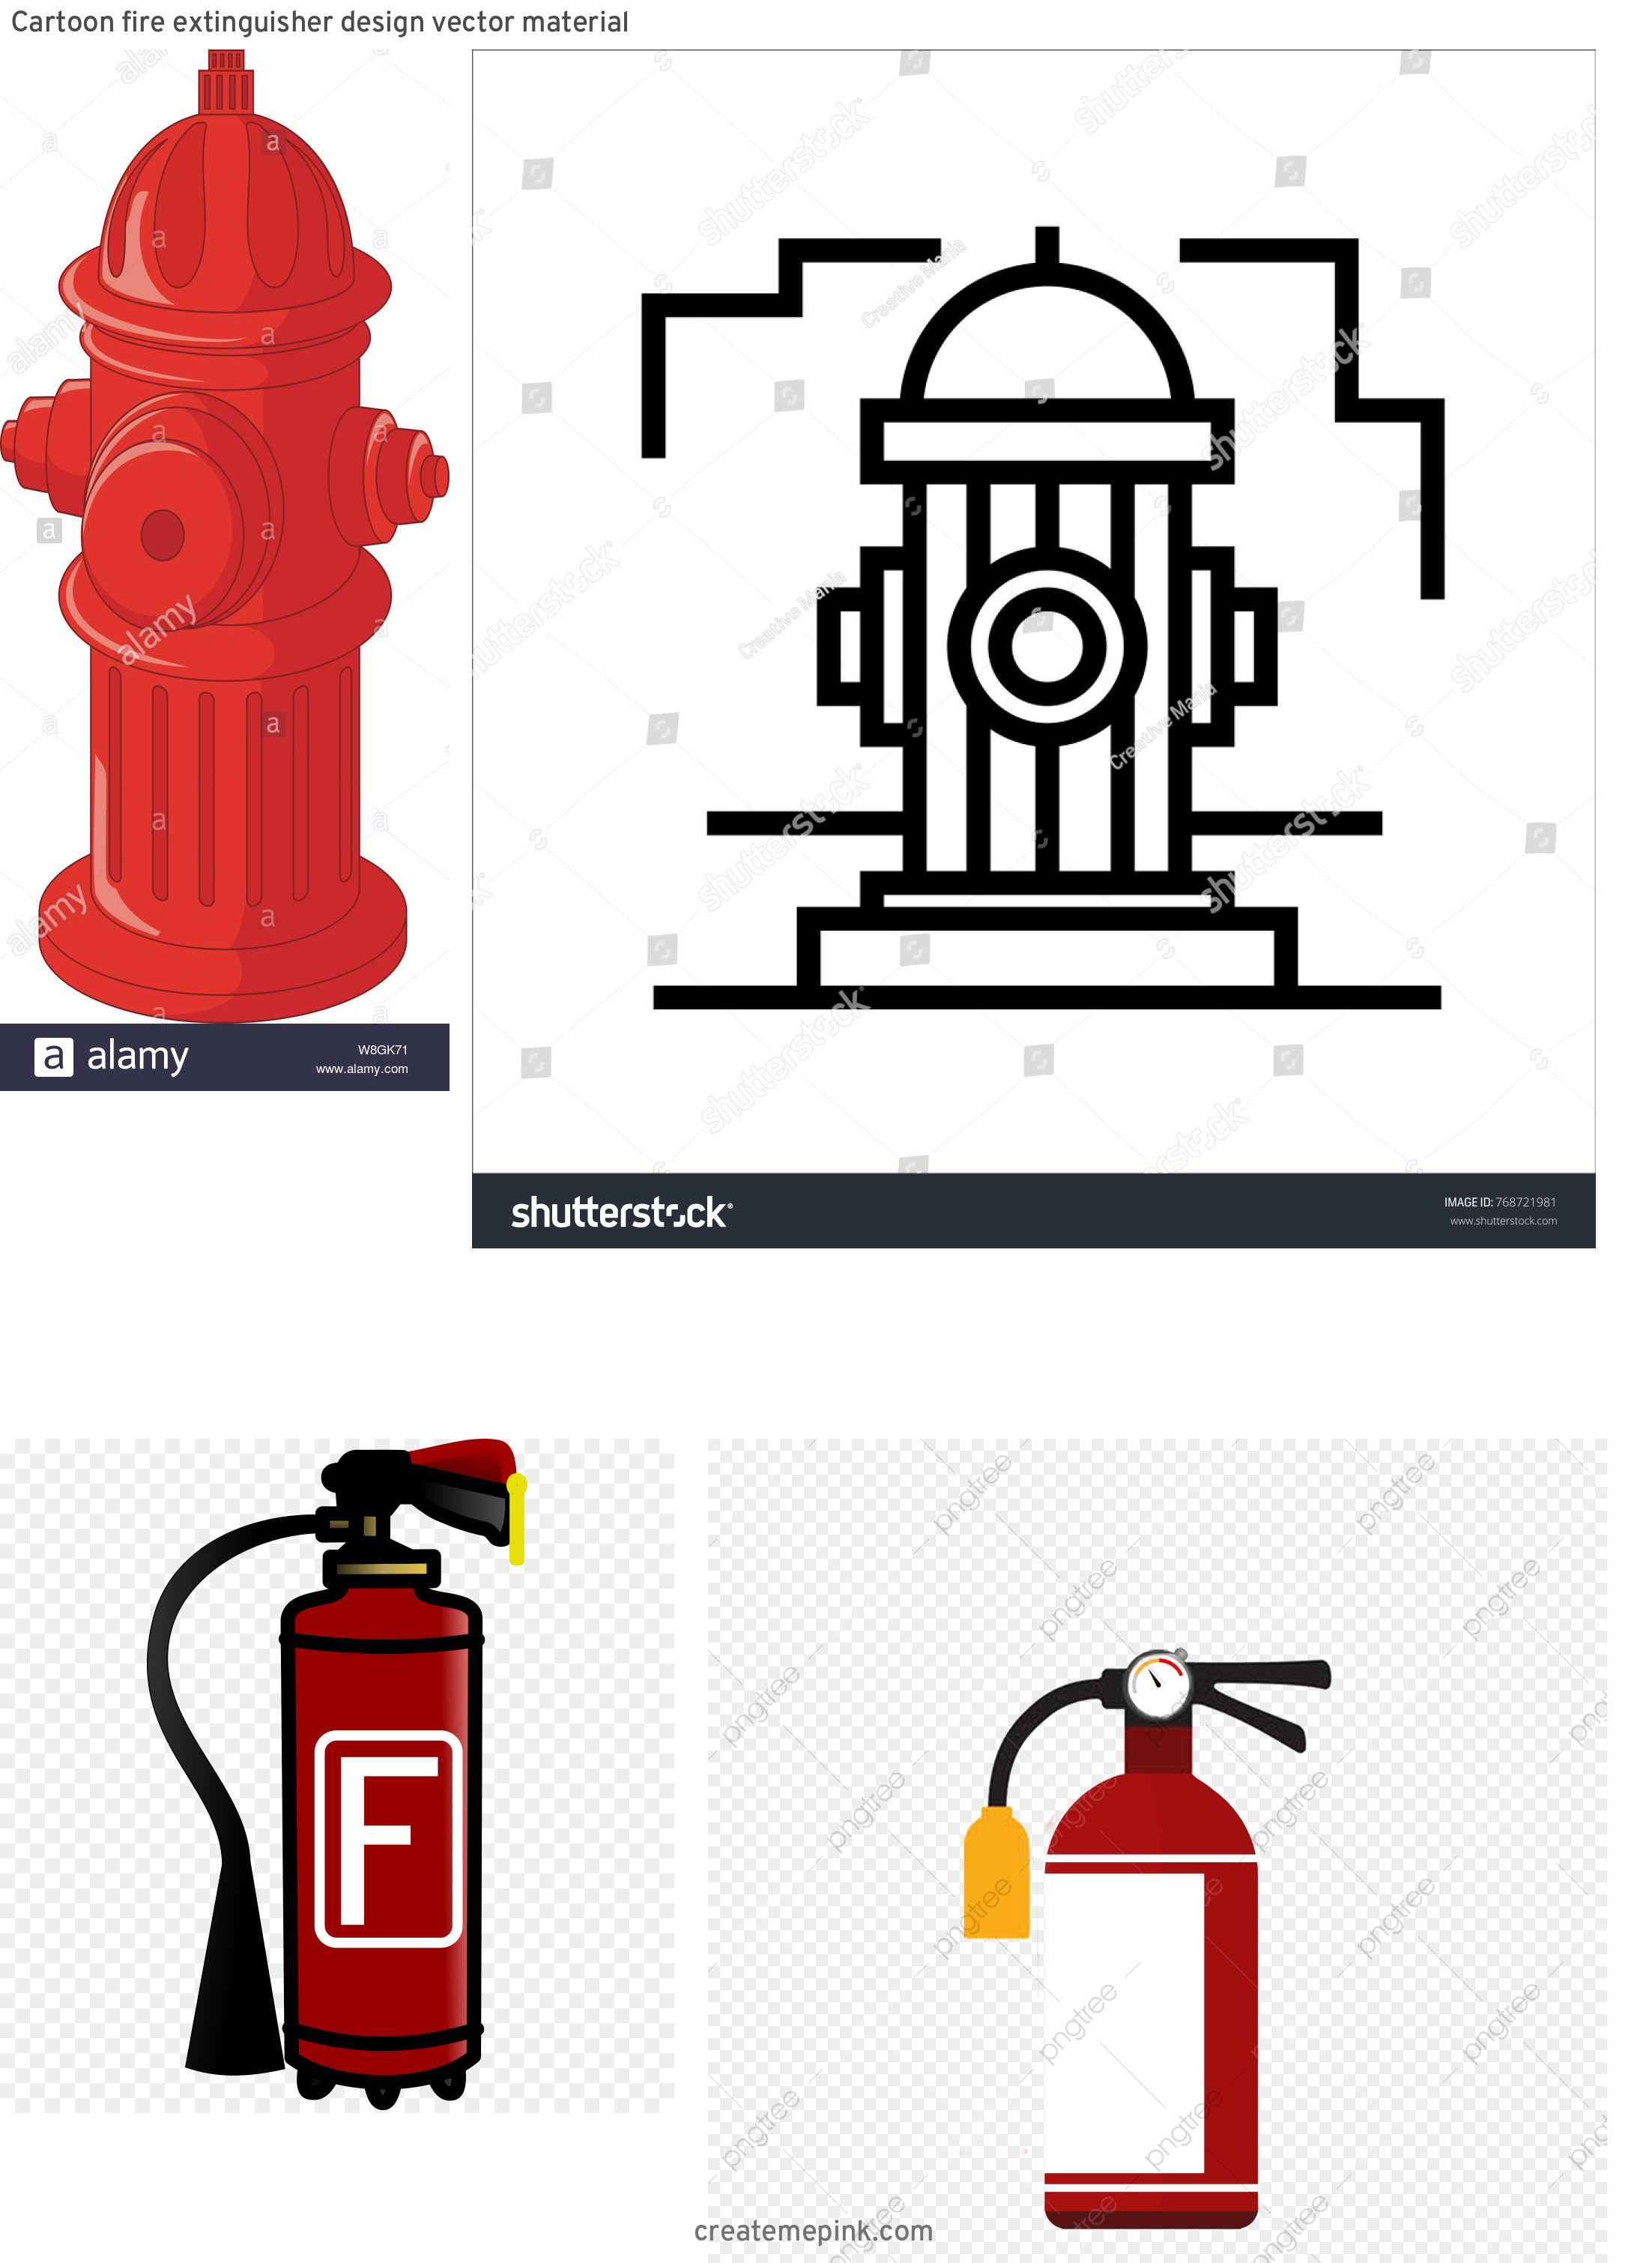 Fire Hydrant Vector Clip Art: Cartoon Fire Extinguisher Design Vector Material